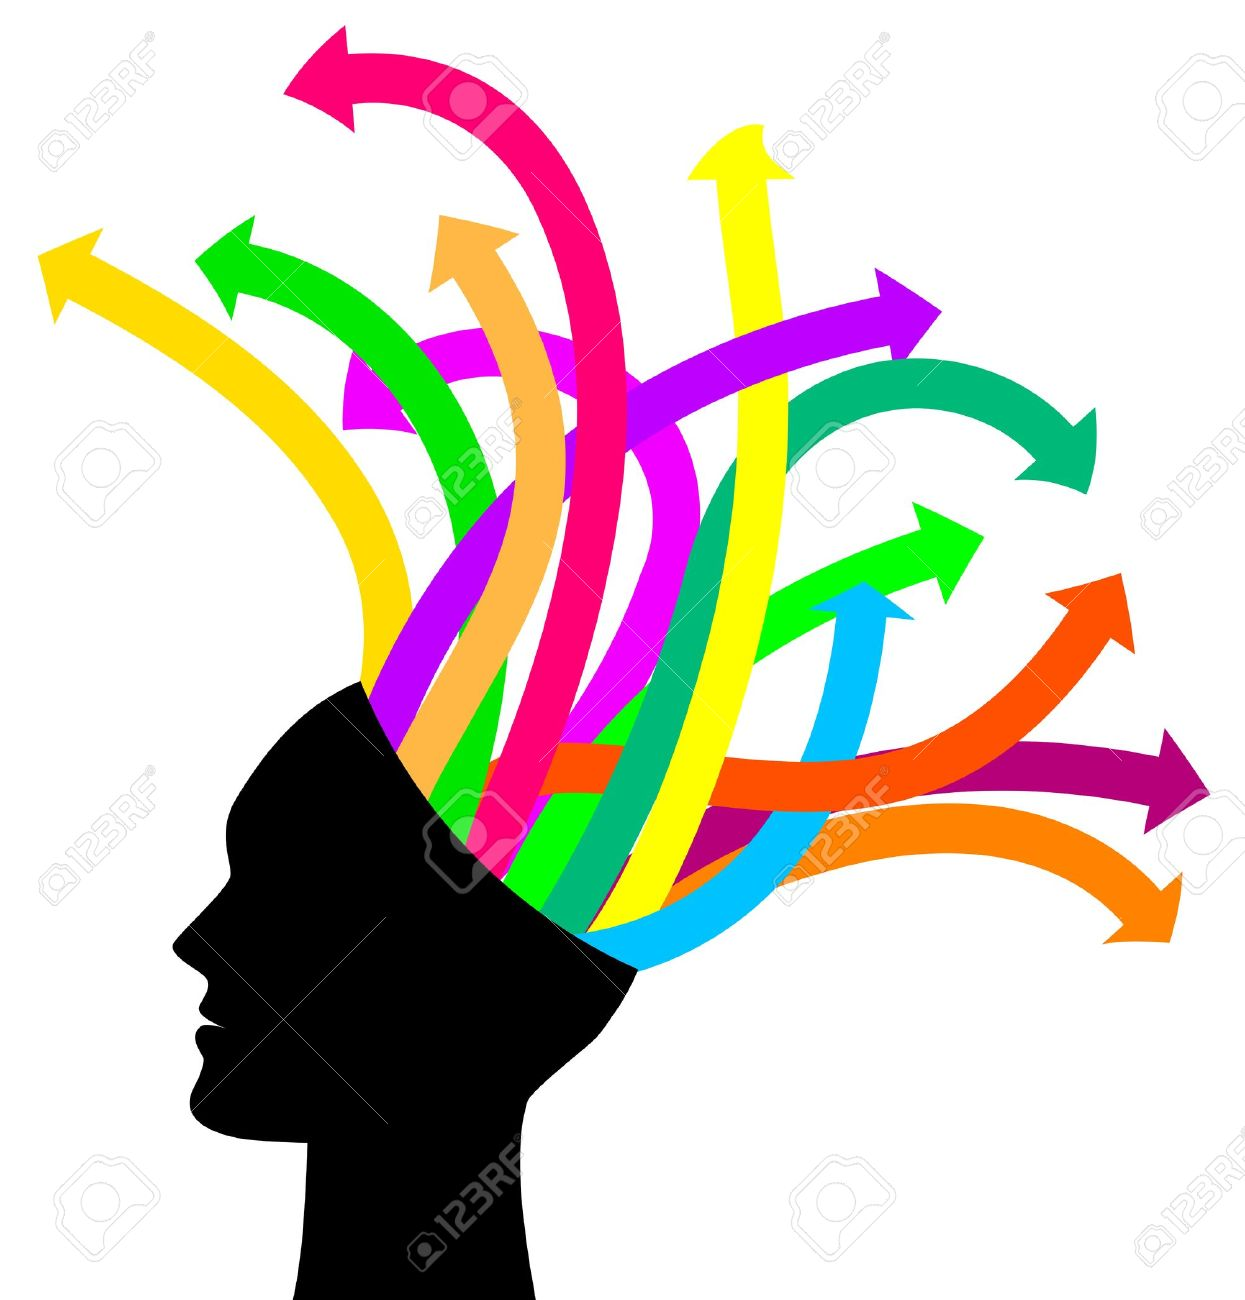 Thoughts and options - vector illustration of head with arrows Stock Vector - 15200886